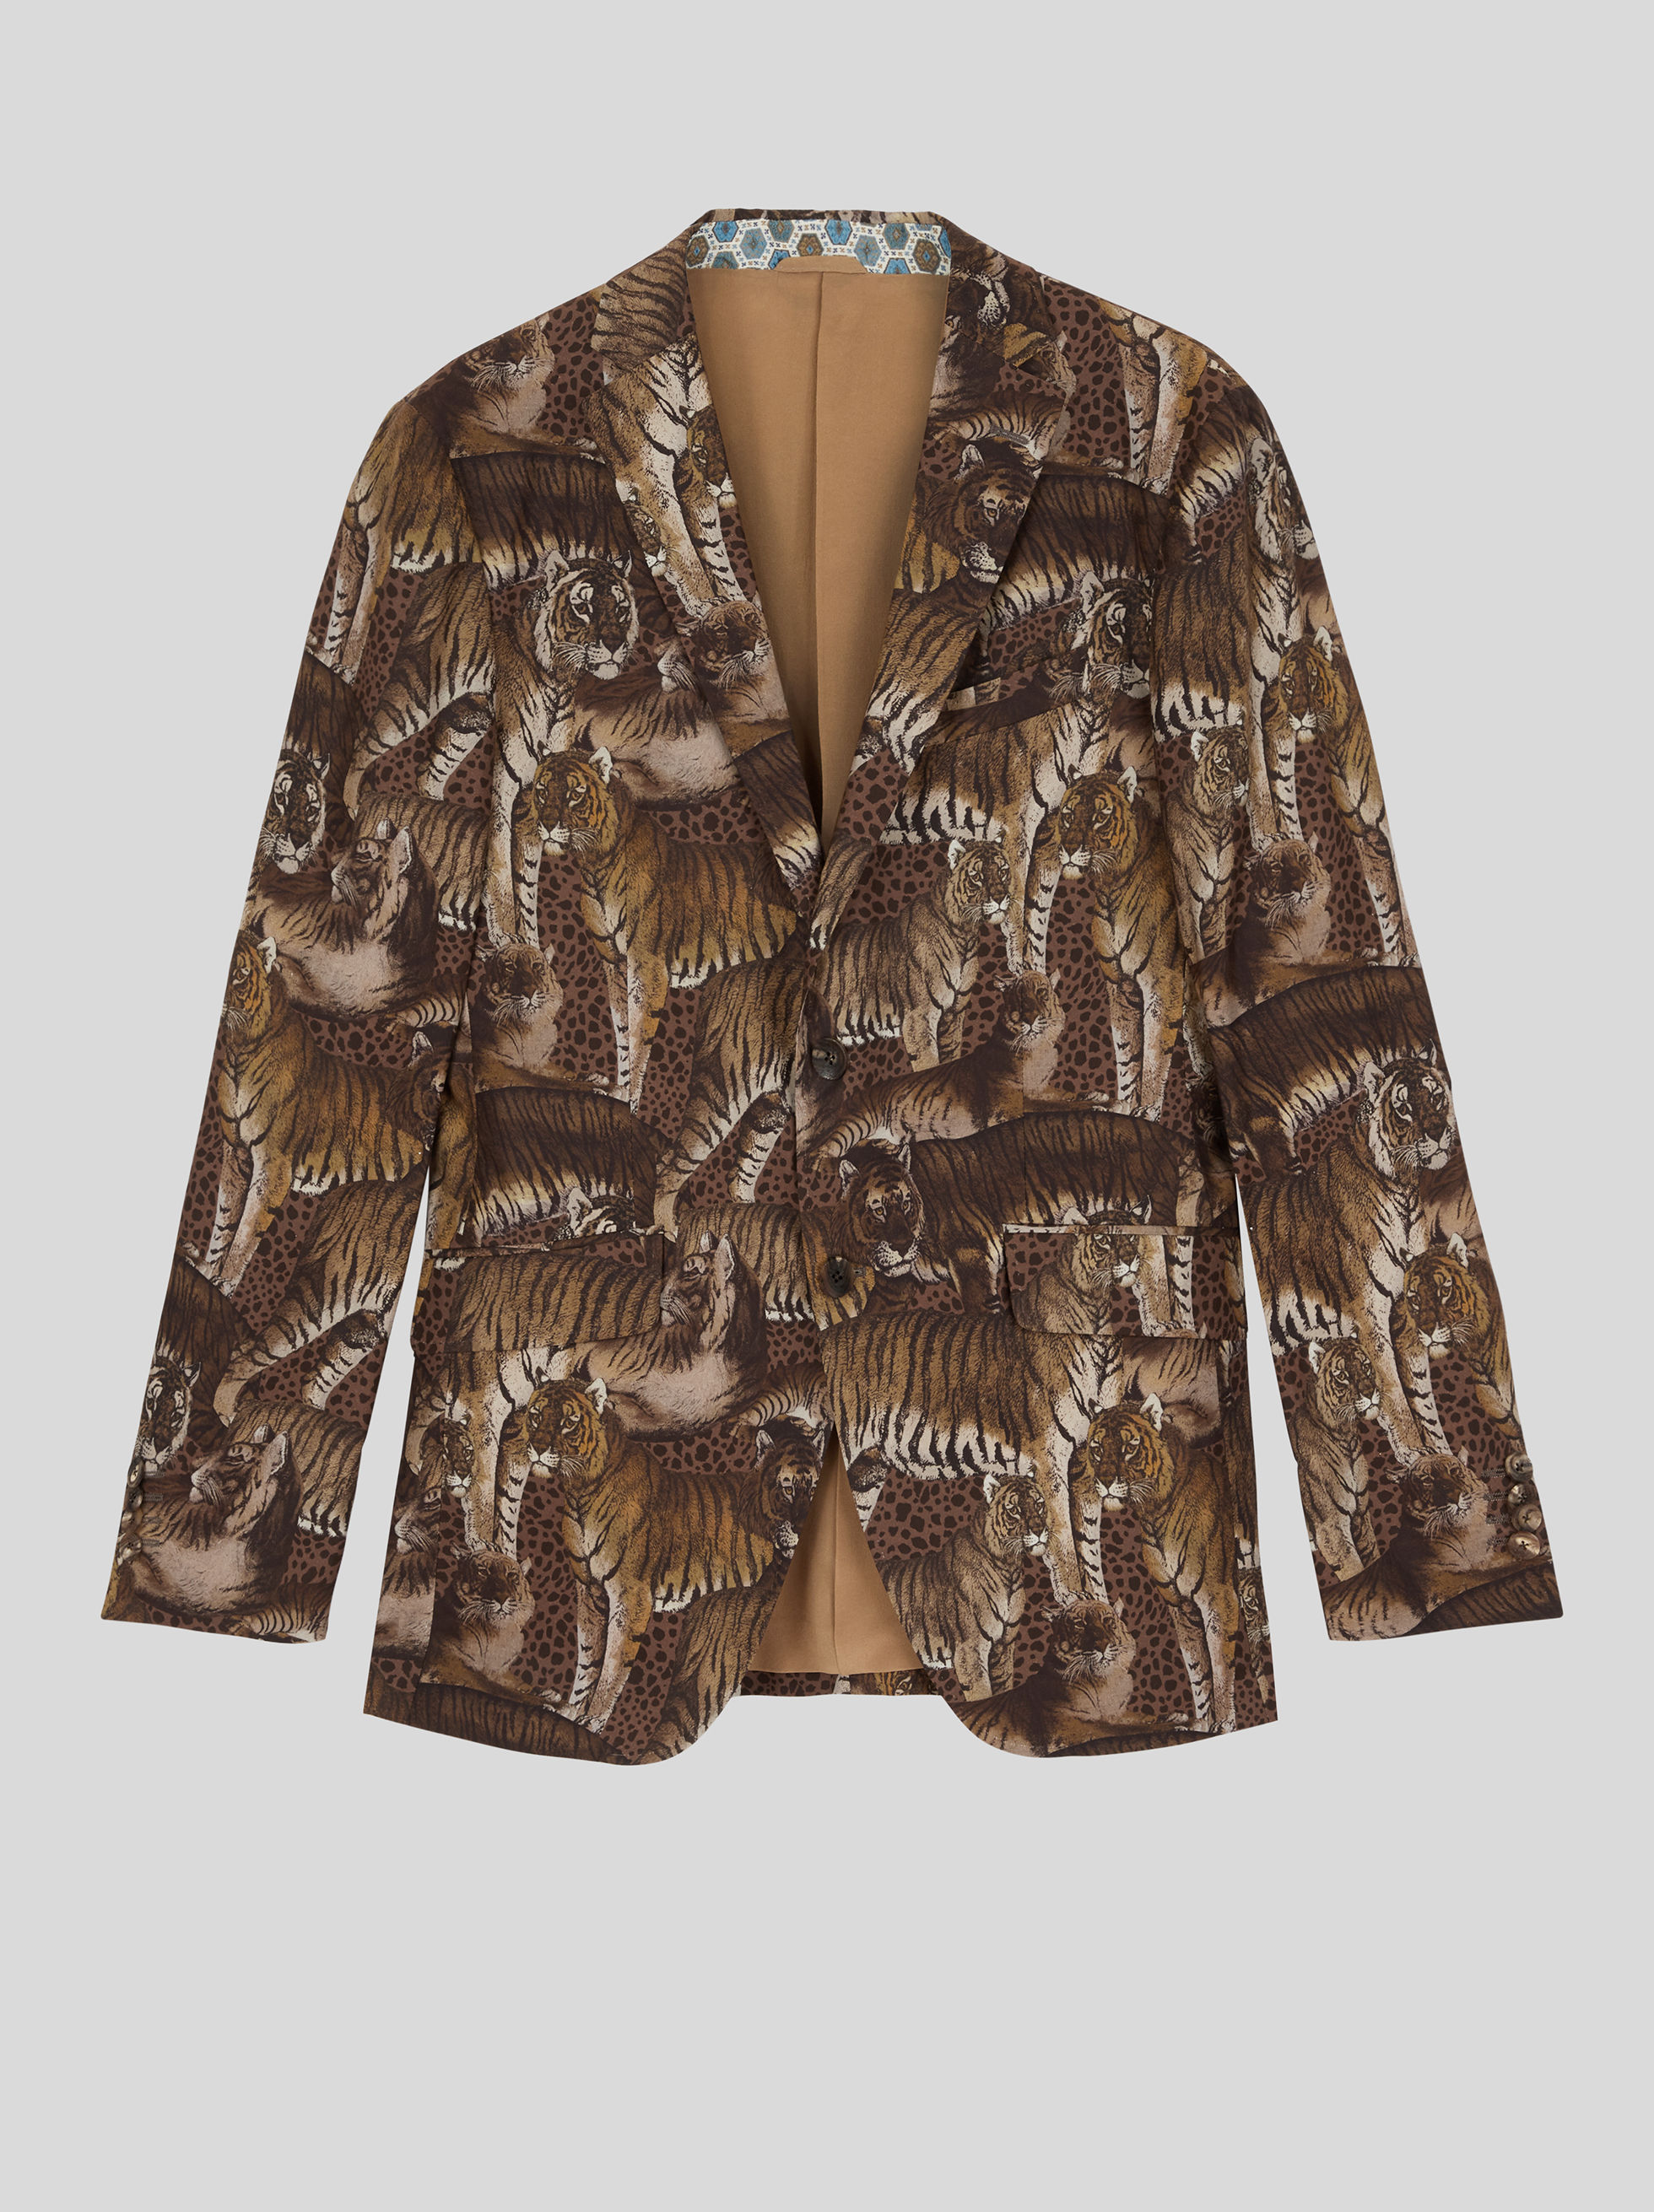 TAILORED JACKET IN ANIMAL PRINT